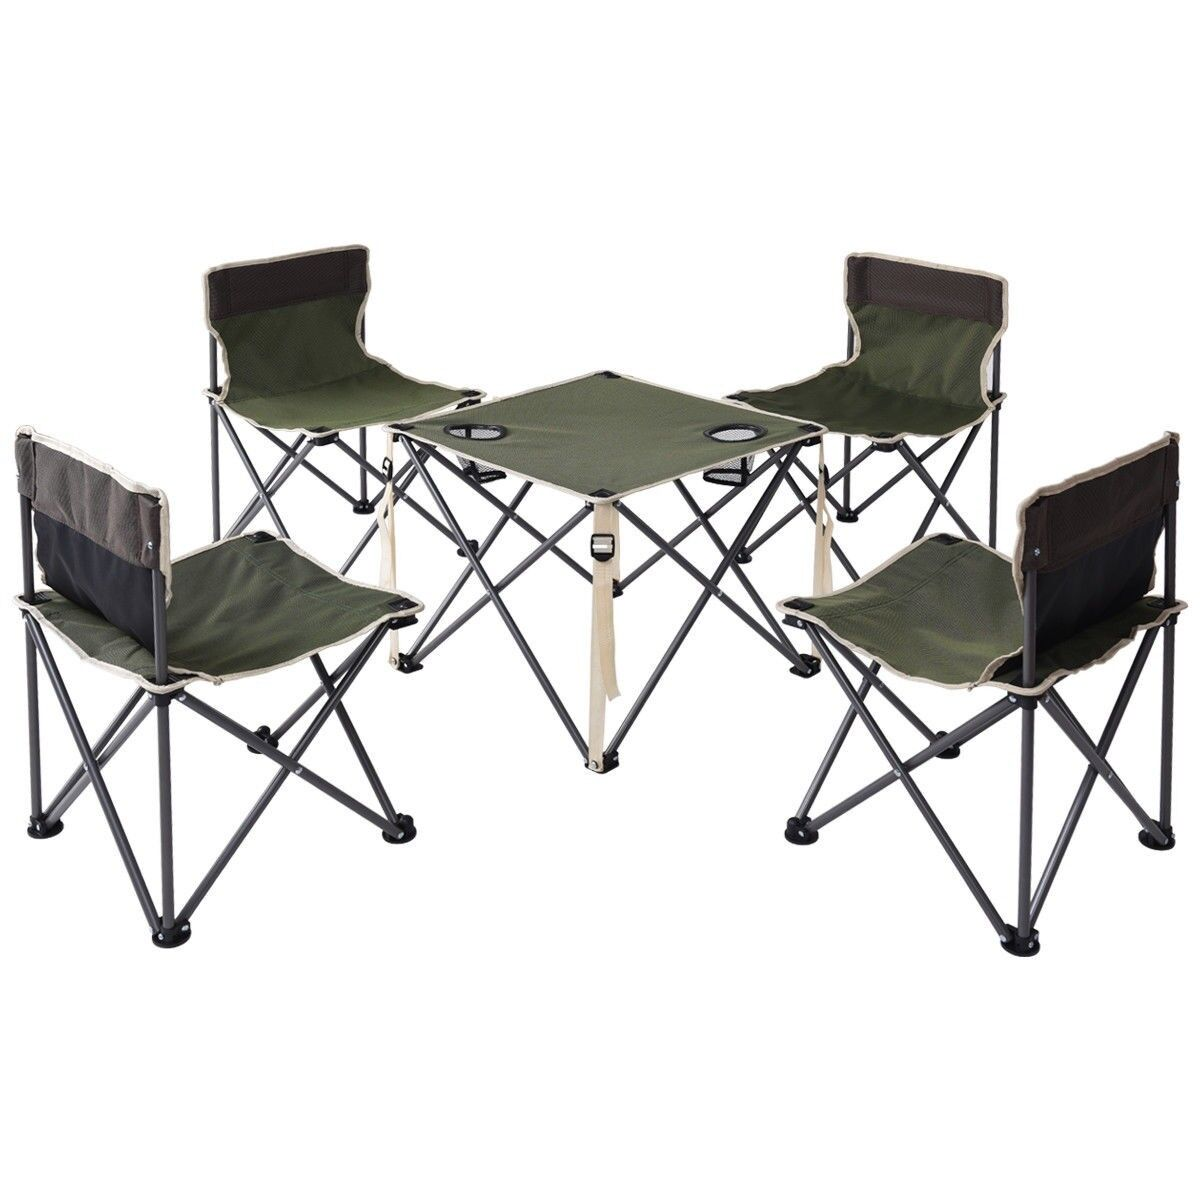 Fine Details About Folding Camping Table Chairs Portable Picnic Foldable Seats Outdoor Carrying Bag Inzonedesignstudio Interior Chair Design Inzonedesignstudiocom